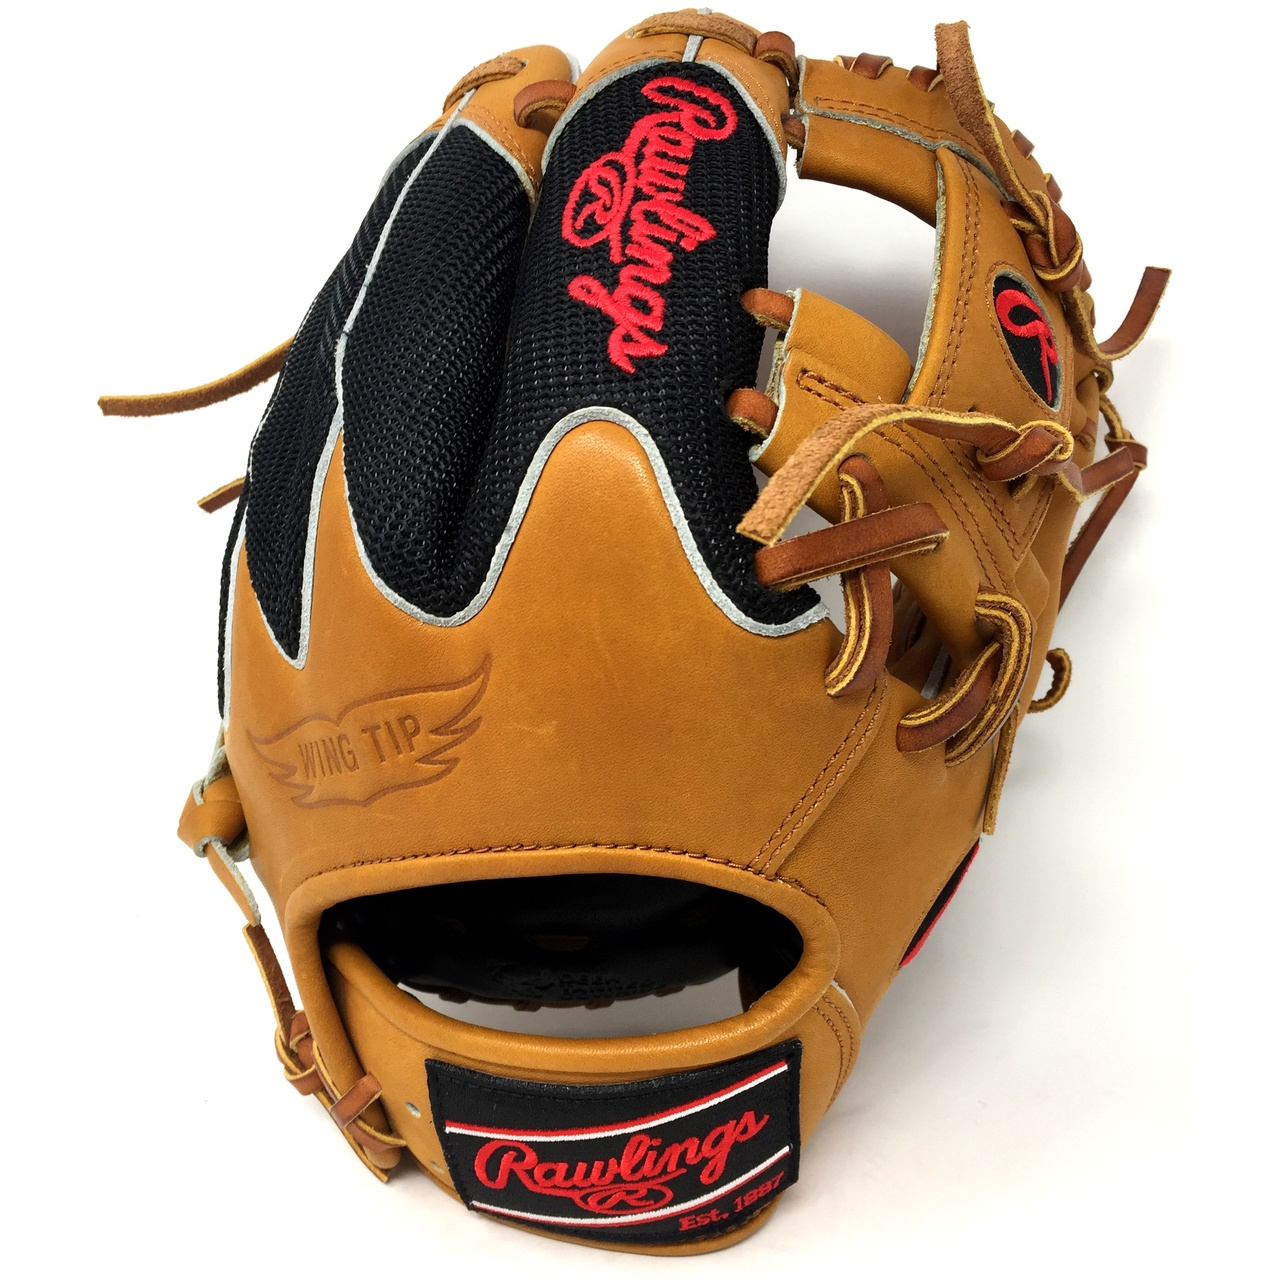 Rawlings Heart of the Hide Wingtip Back and Mesh Back combo. 11.5 inches and I Web Infield Glove. Right Hand Throw.